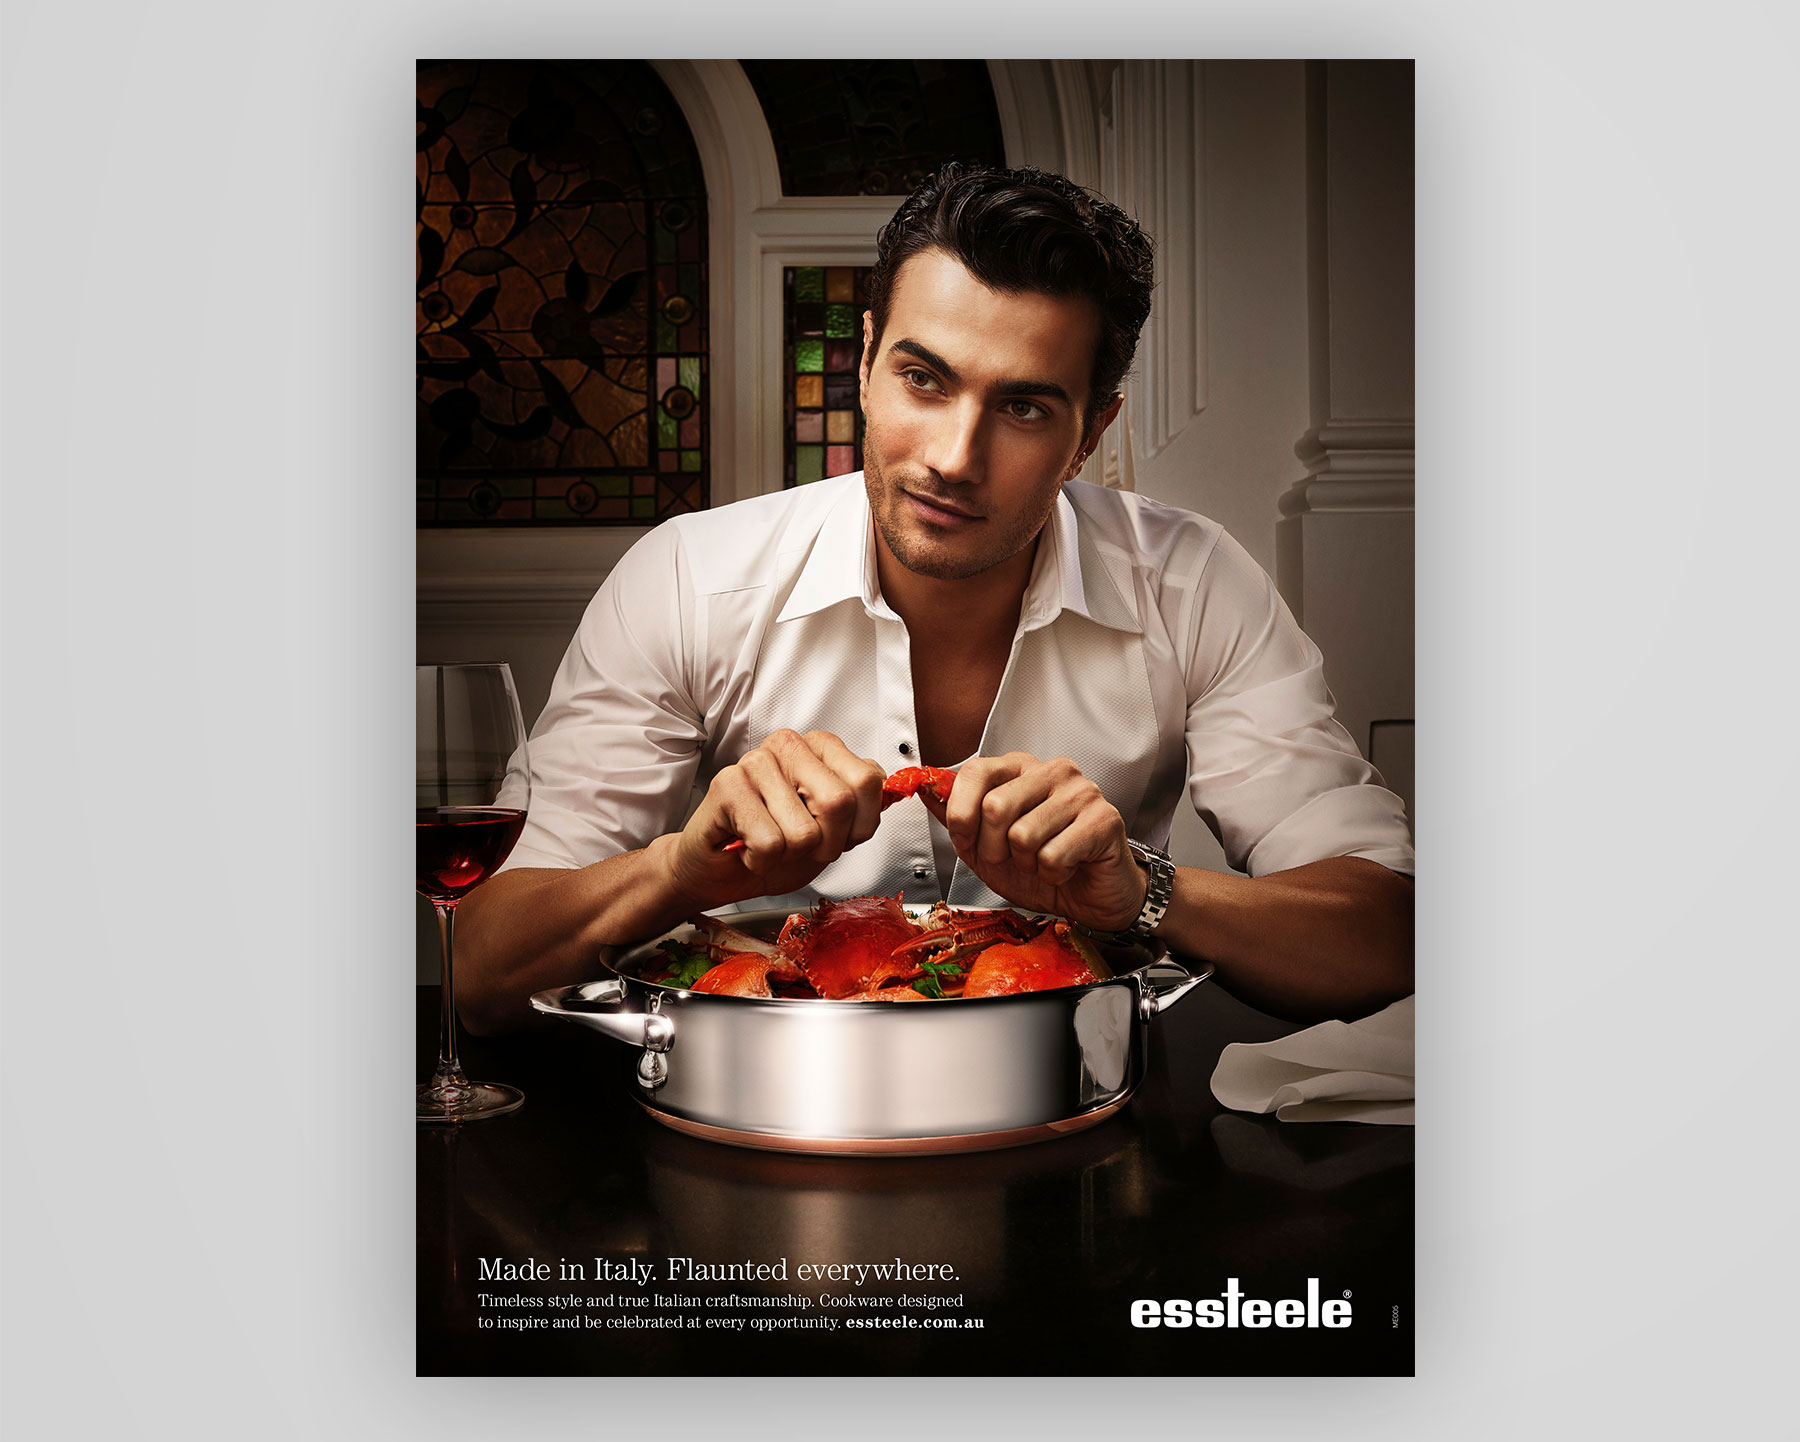 Essteele cookware | Handsome man eating crabs out of a stainless steel cooking pot | Magazine Ad